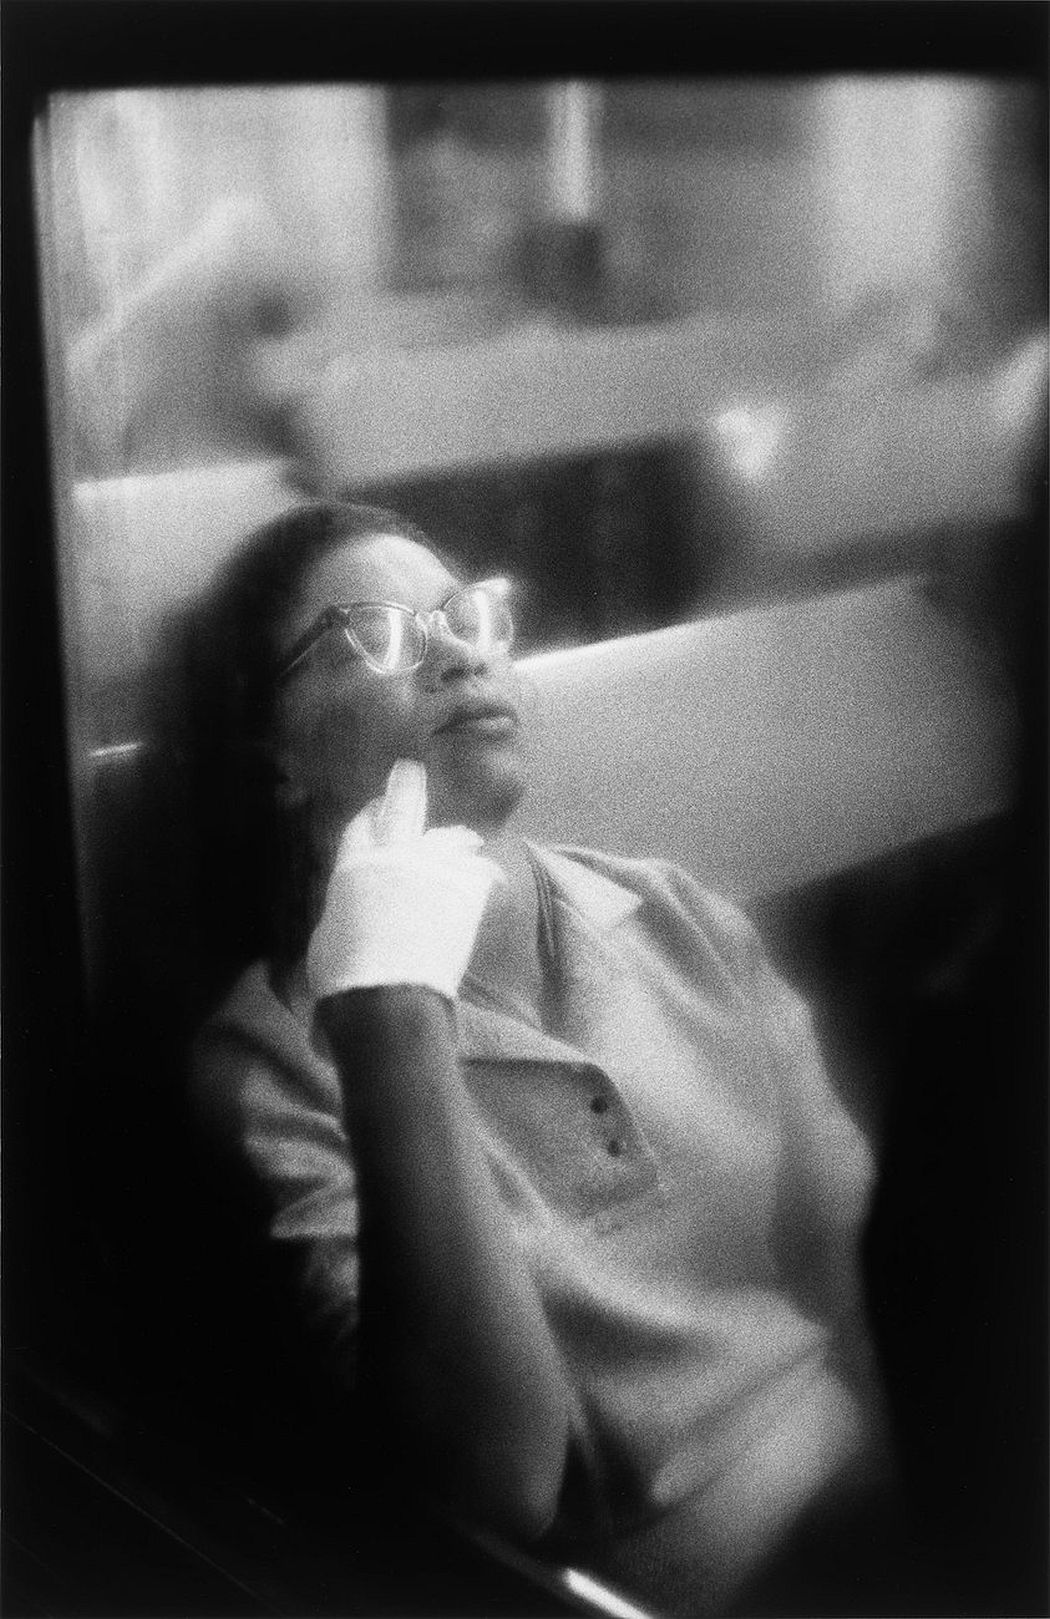 Louis Stettner, Woman with White Glove, Penn Station, 1958;© Estate of Louis Stettner, all rights reserved